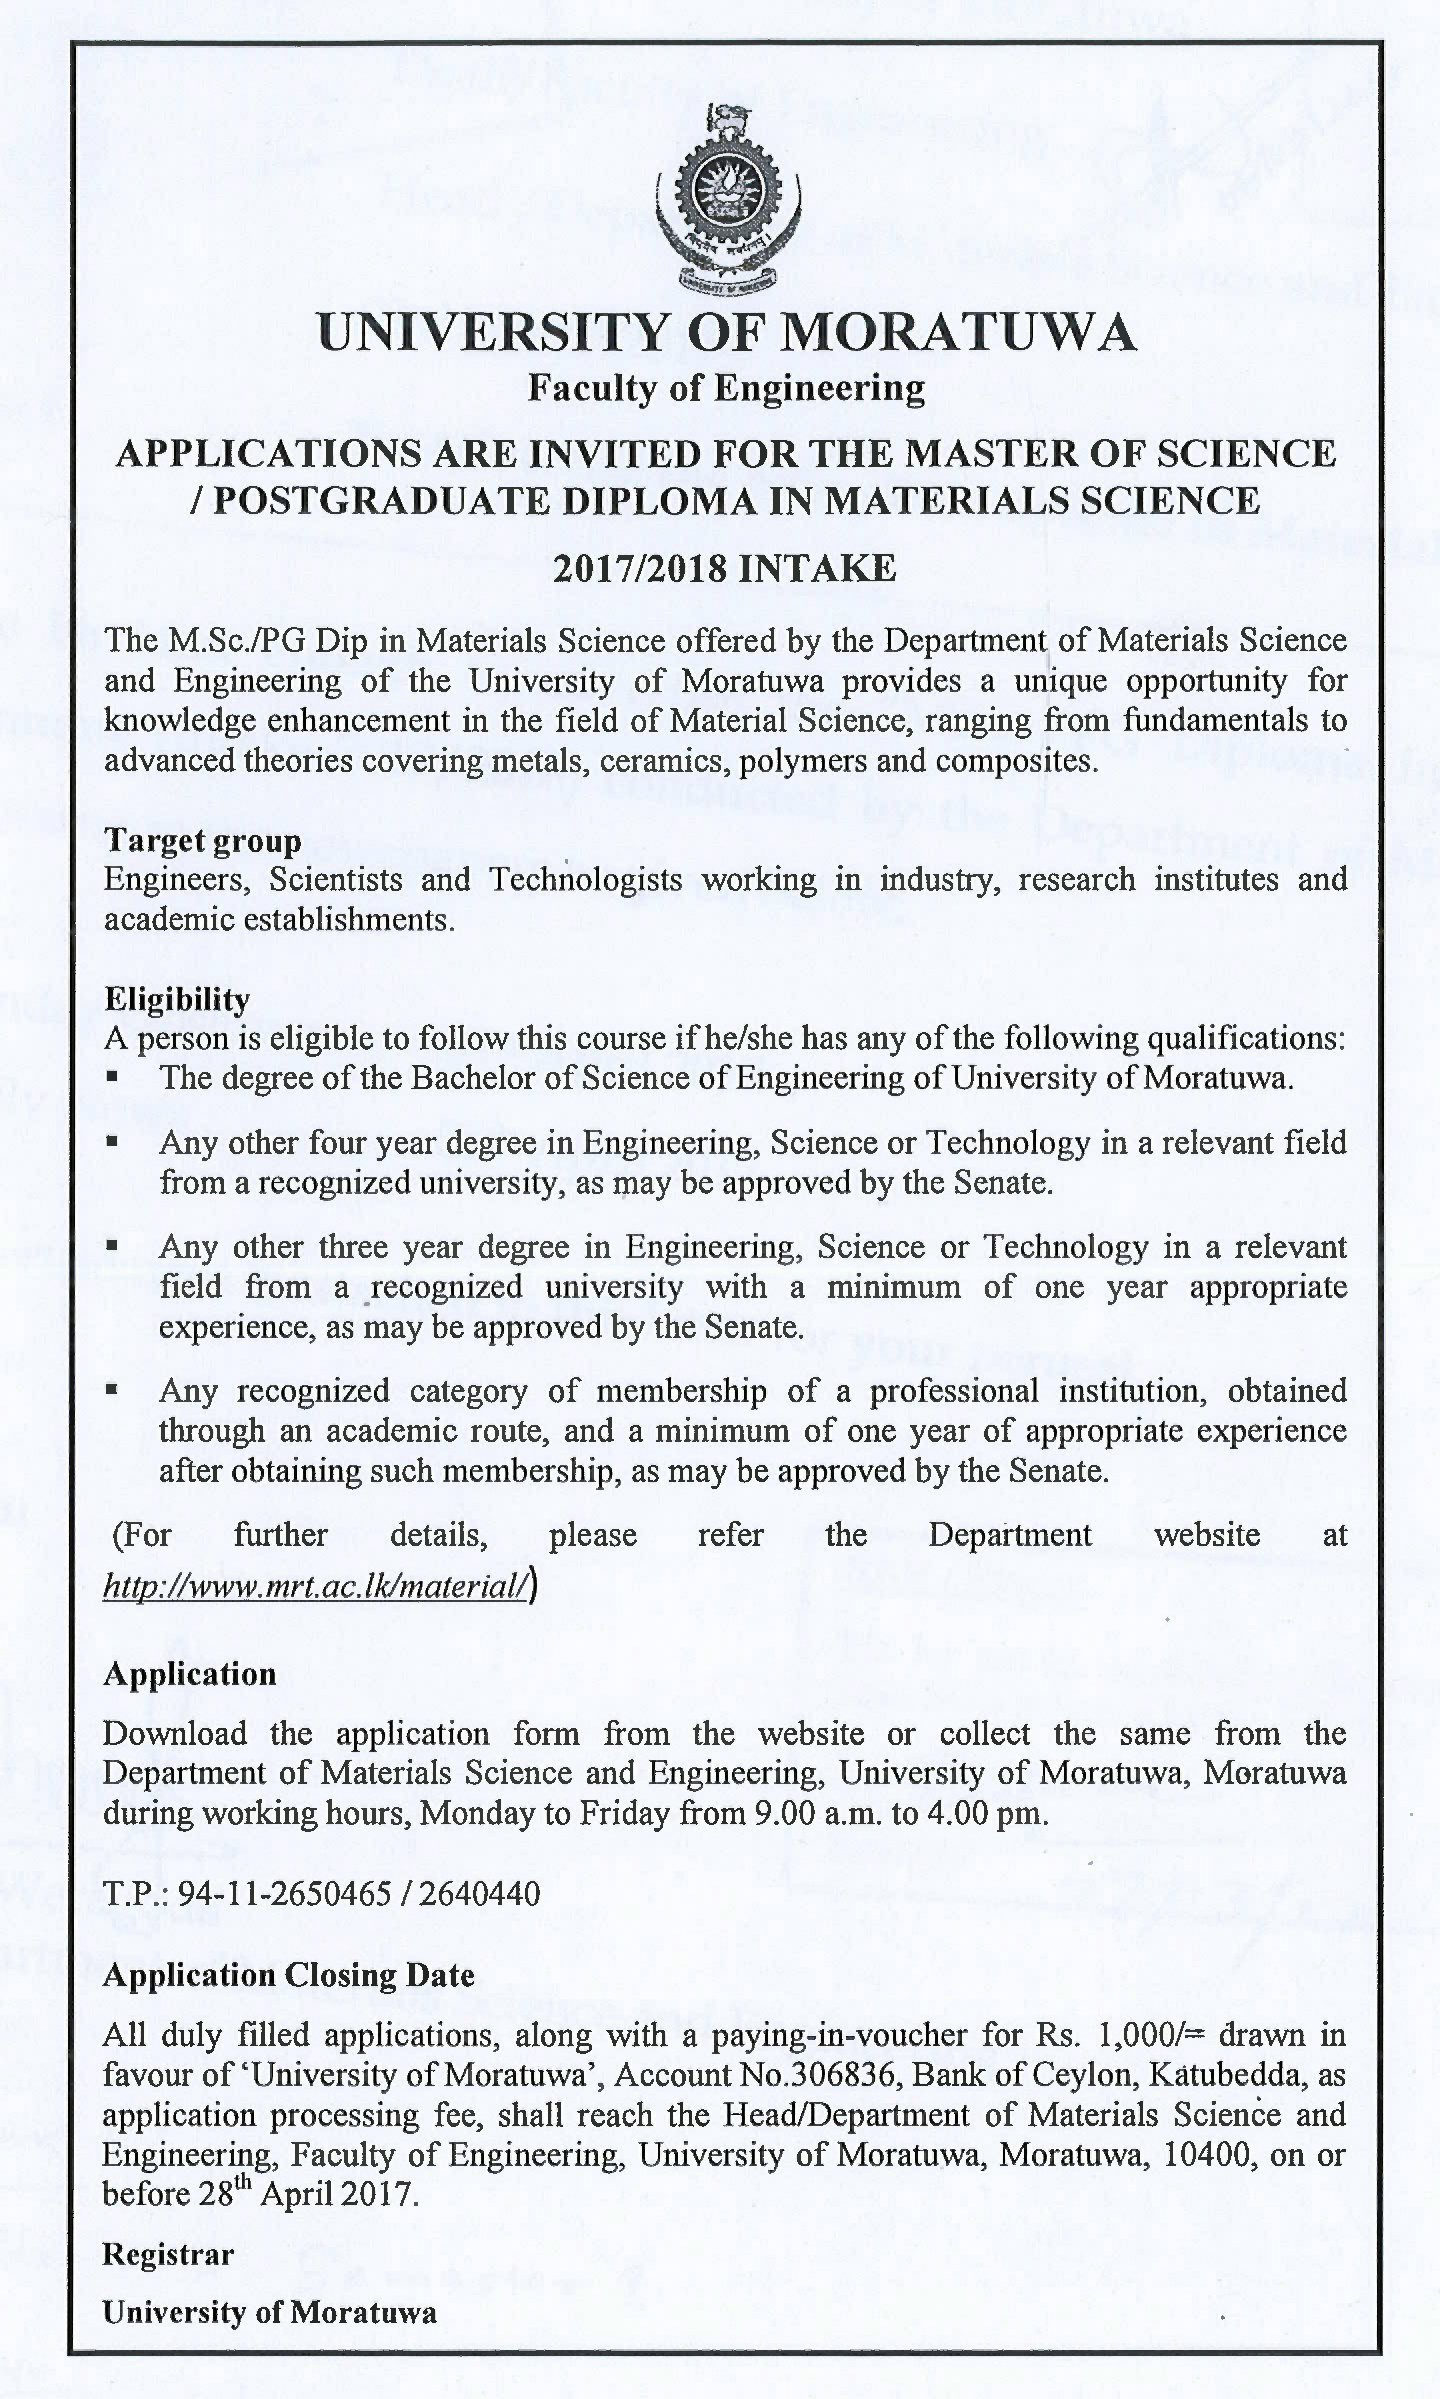 Applications are invited for the Master of Science/ Postgraduate Diploma in Material Science